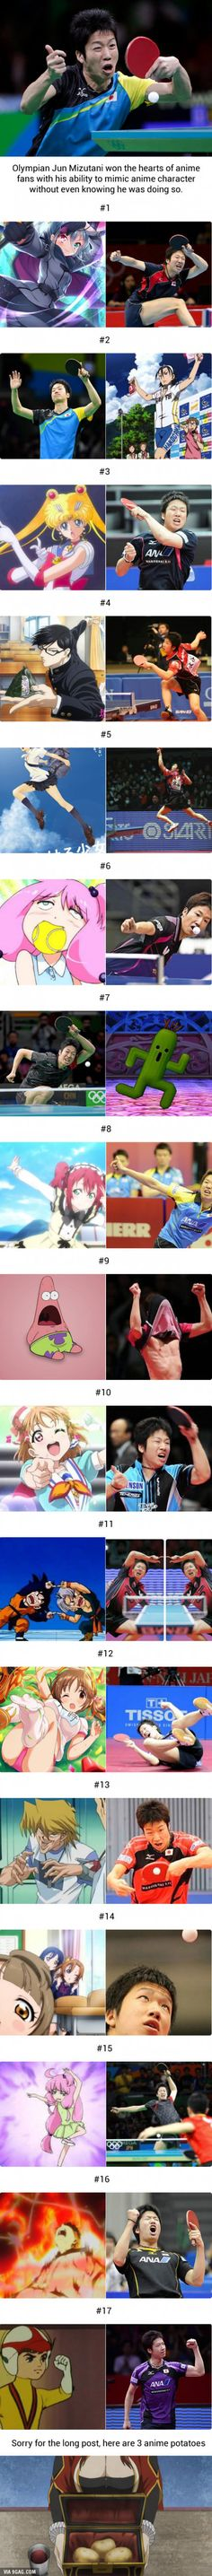 17 Times Japanese Olympian Jun Mizutani Poses As Anime Characters Without Even Knowing It